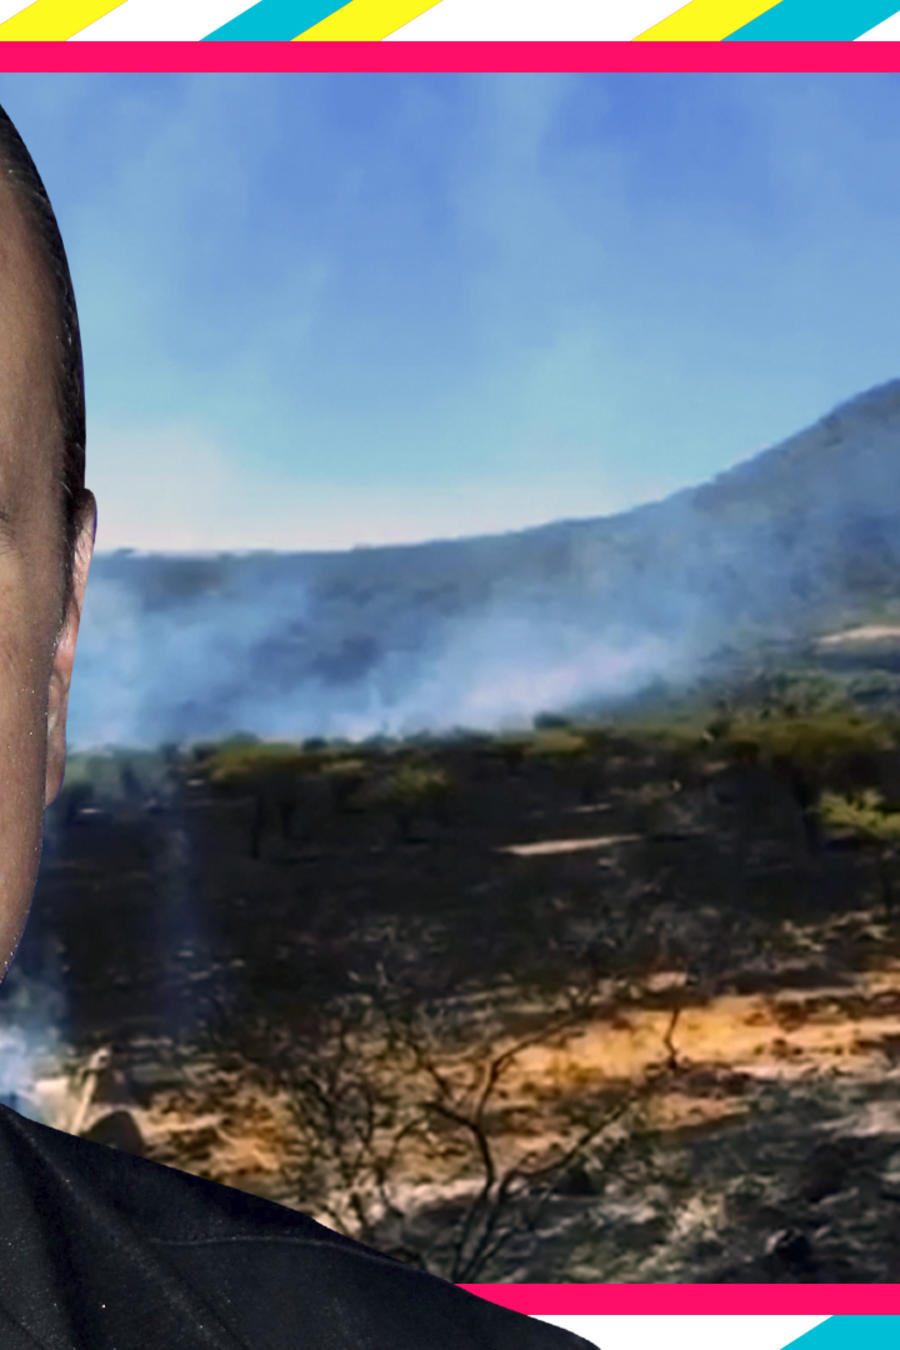 Pepe Aguilar incendio fotos videos